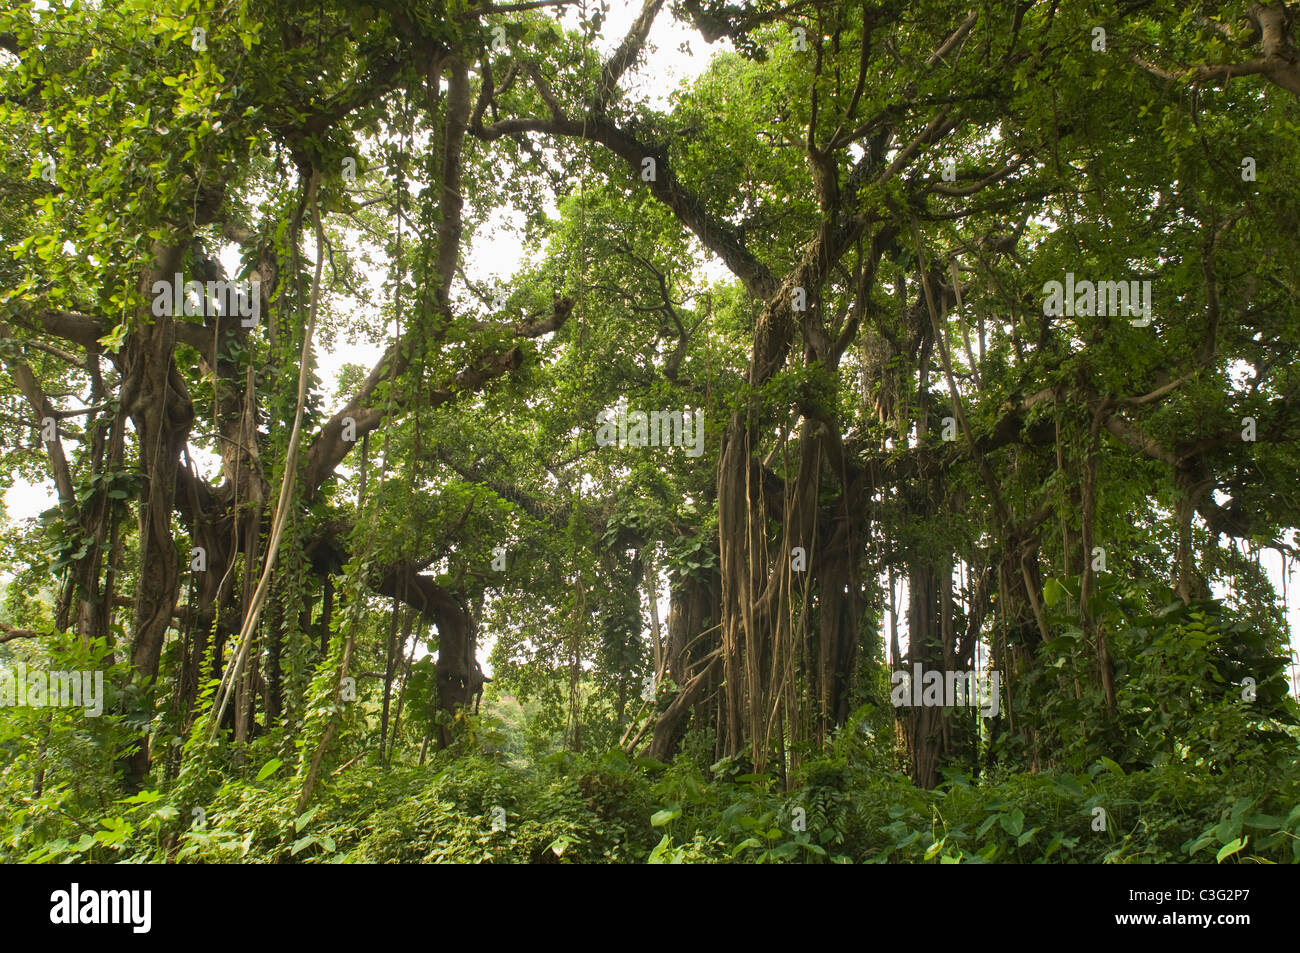 Trees in a forest, Kolkata, West Bengal, India - Stock Image